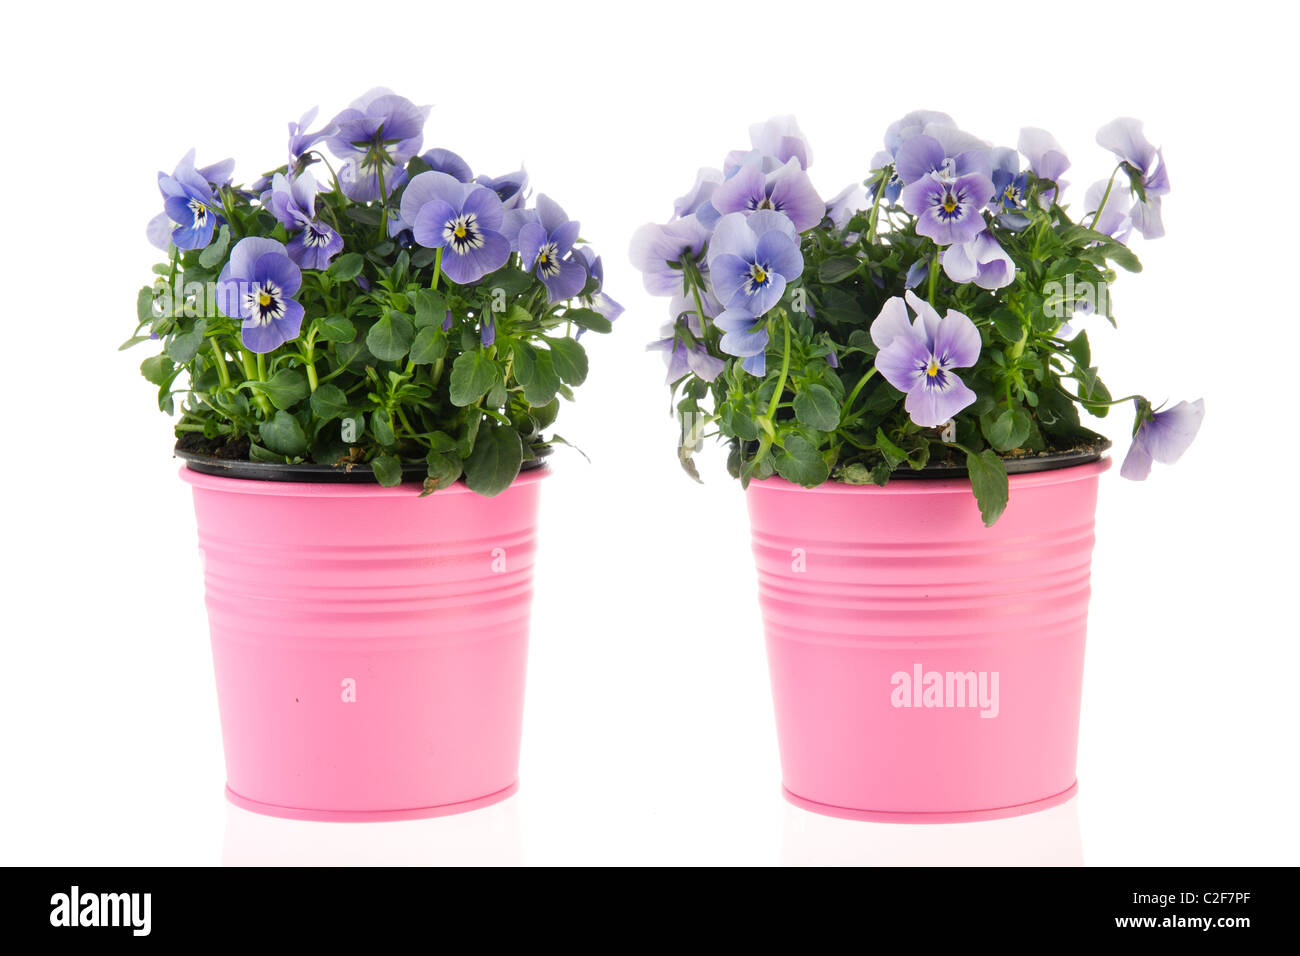 Blue Violets In Pink Flower Pots Isolated Over White Stock Photo